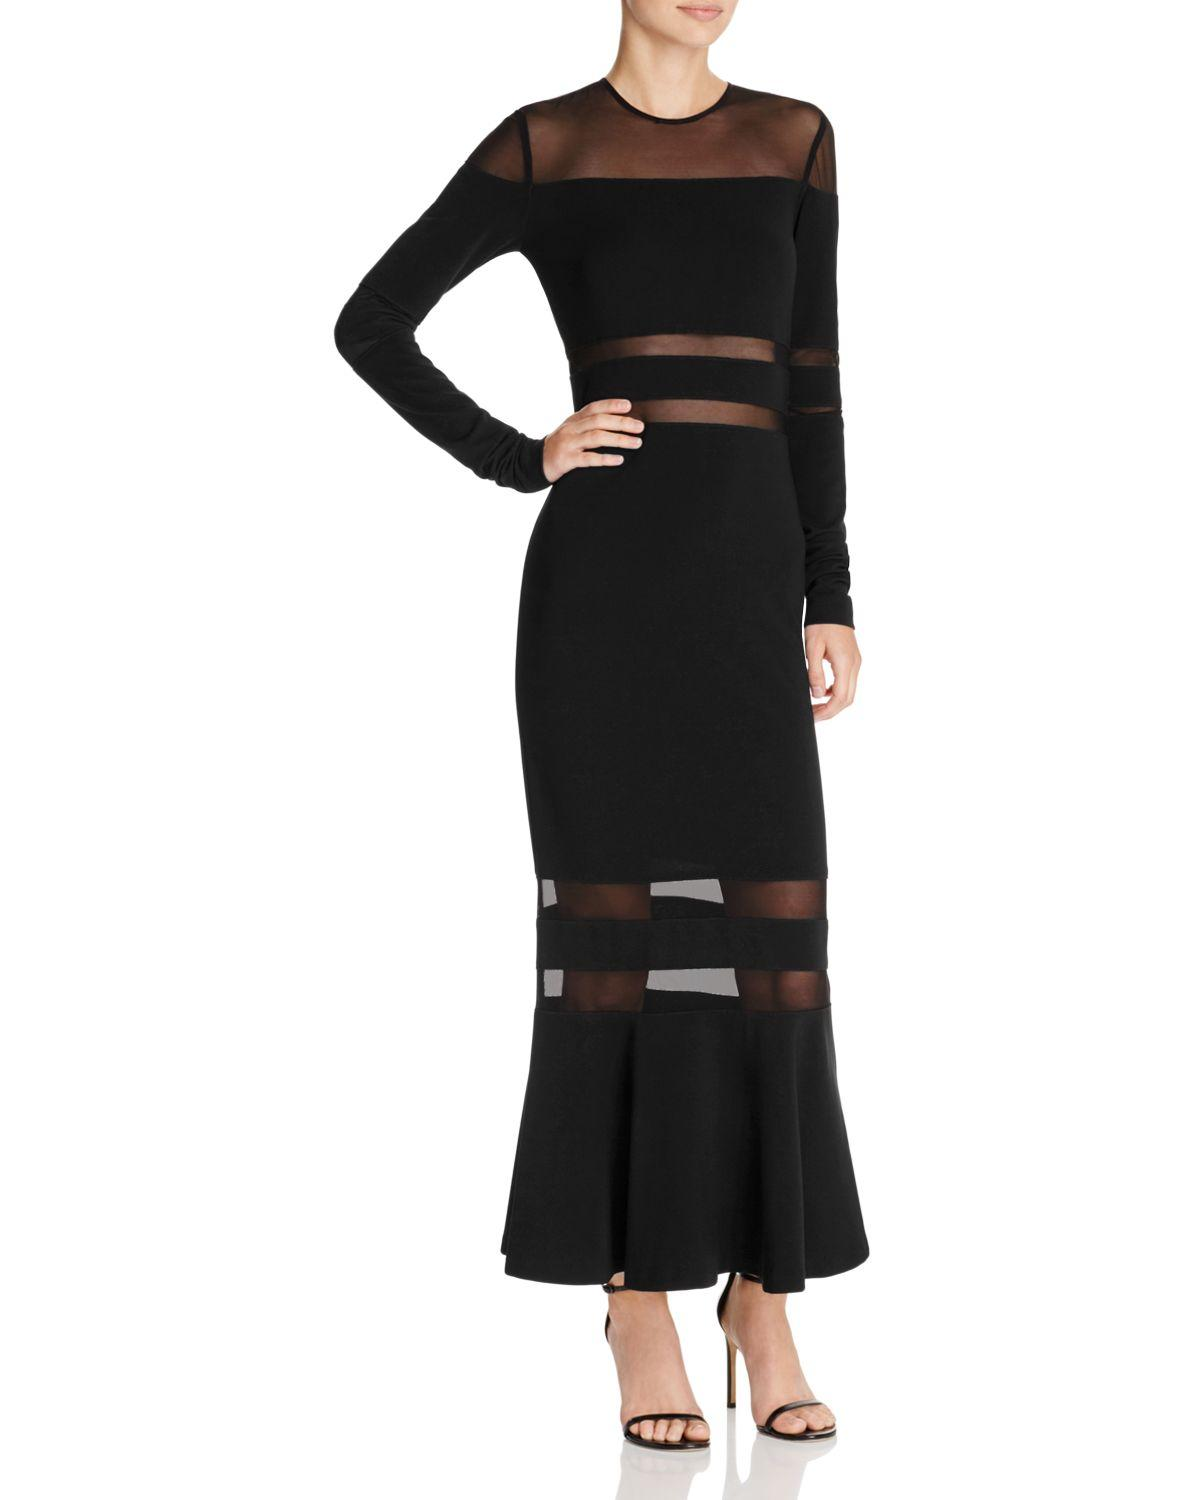 Lyst - Nicole Miller Illusion Inset Gown in Black